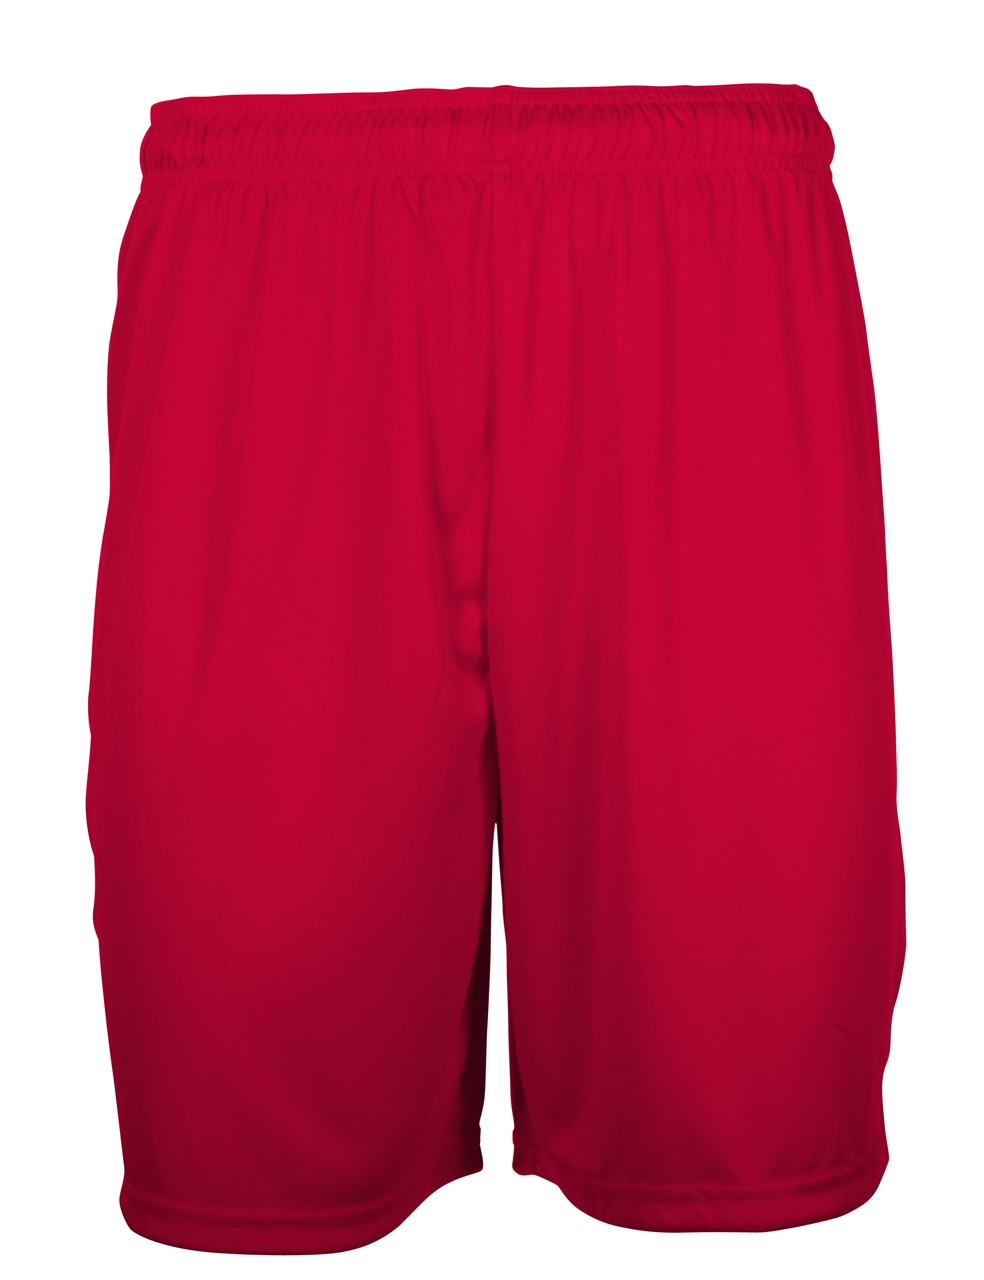 Picture of N3 Sport Dry Fit Short